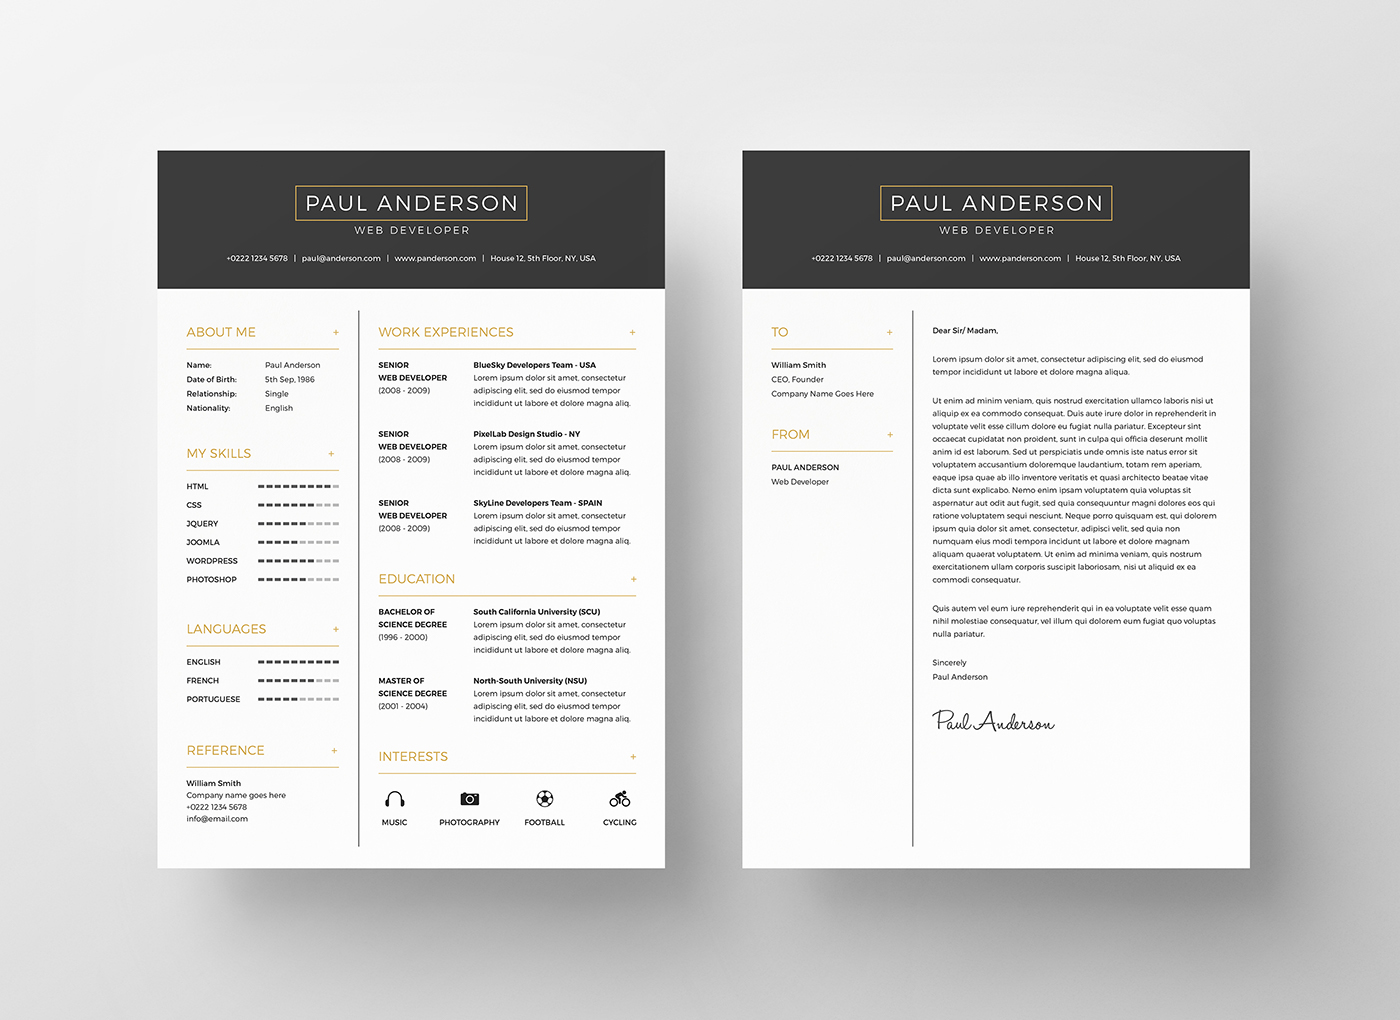 designer resume 2 - Interesting Resume Templates